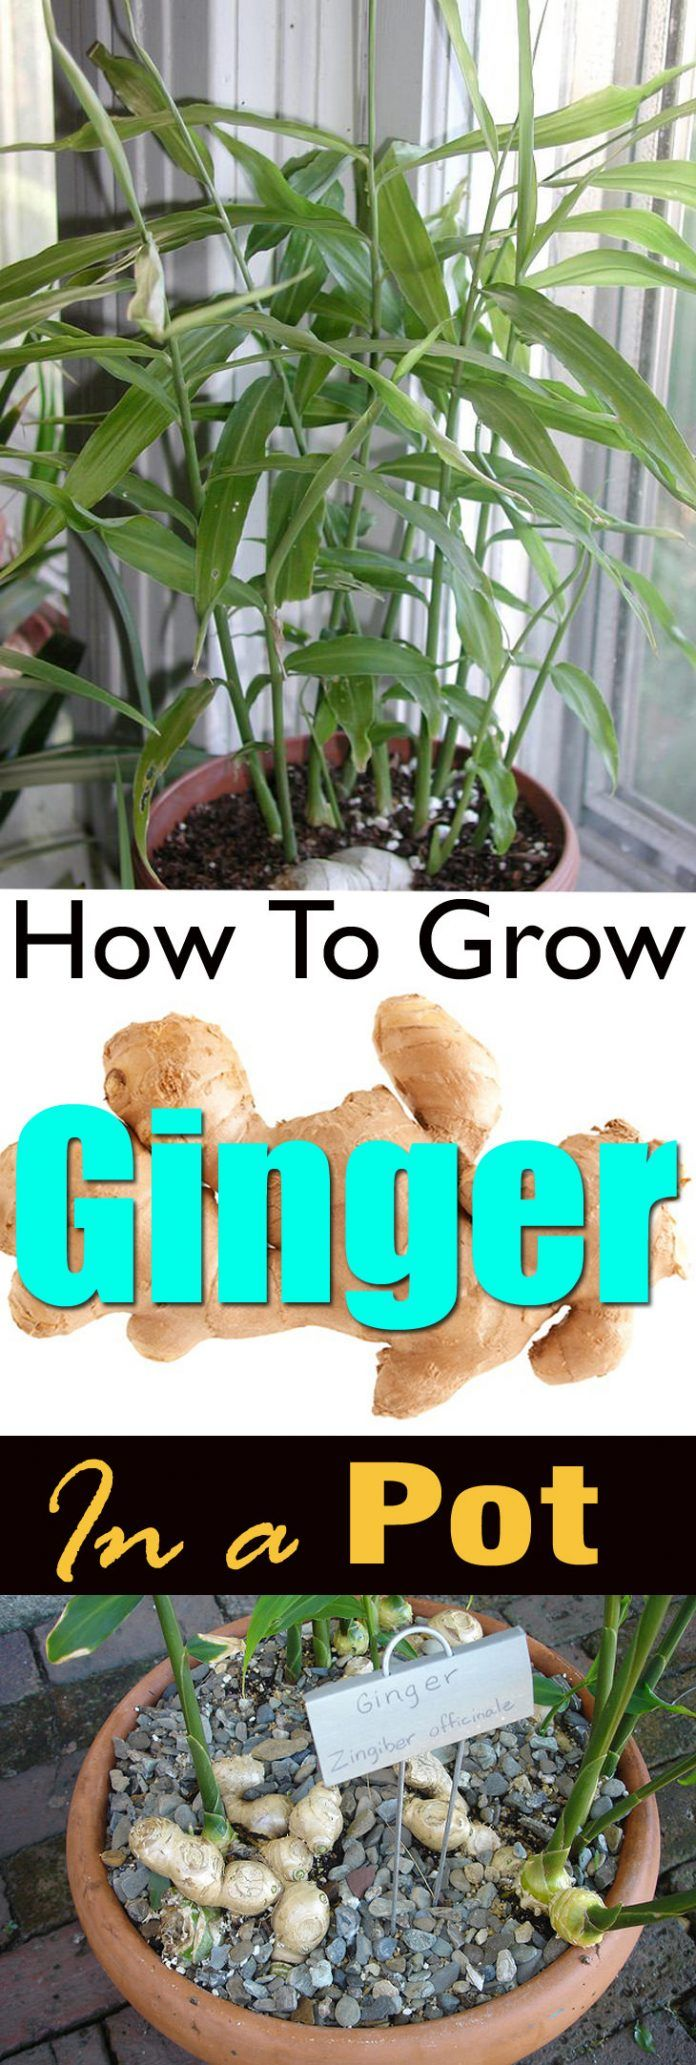 How To Grow Ginger In Pot | Growing Ginger Indoors #bravahomedecor